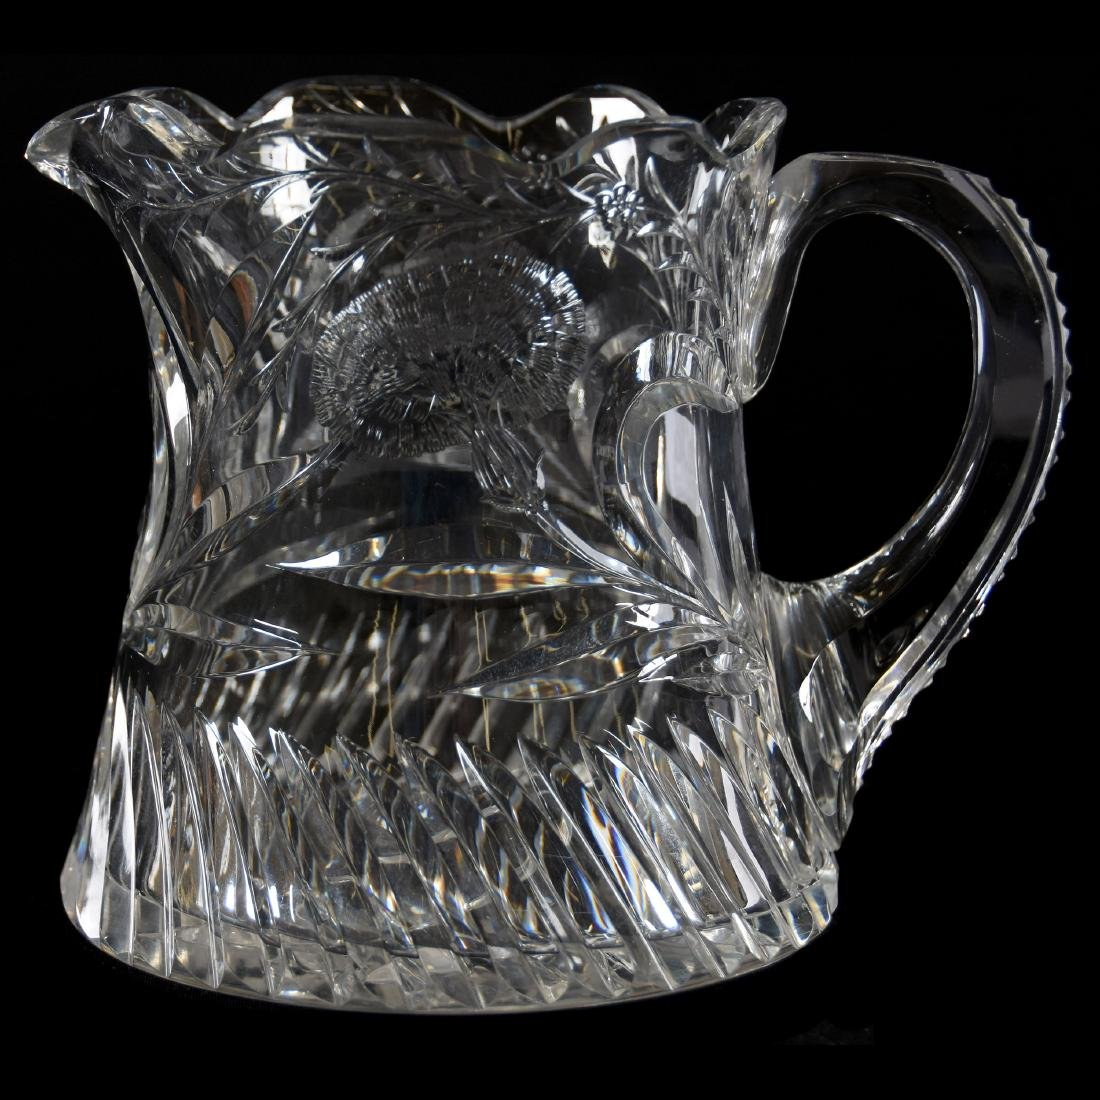 Cider Pitcher, Signed Hawkes, Engraved Carnation